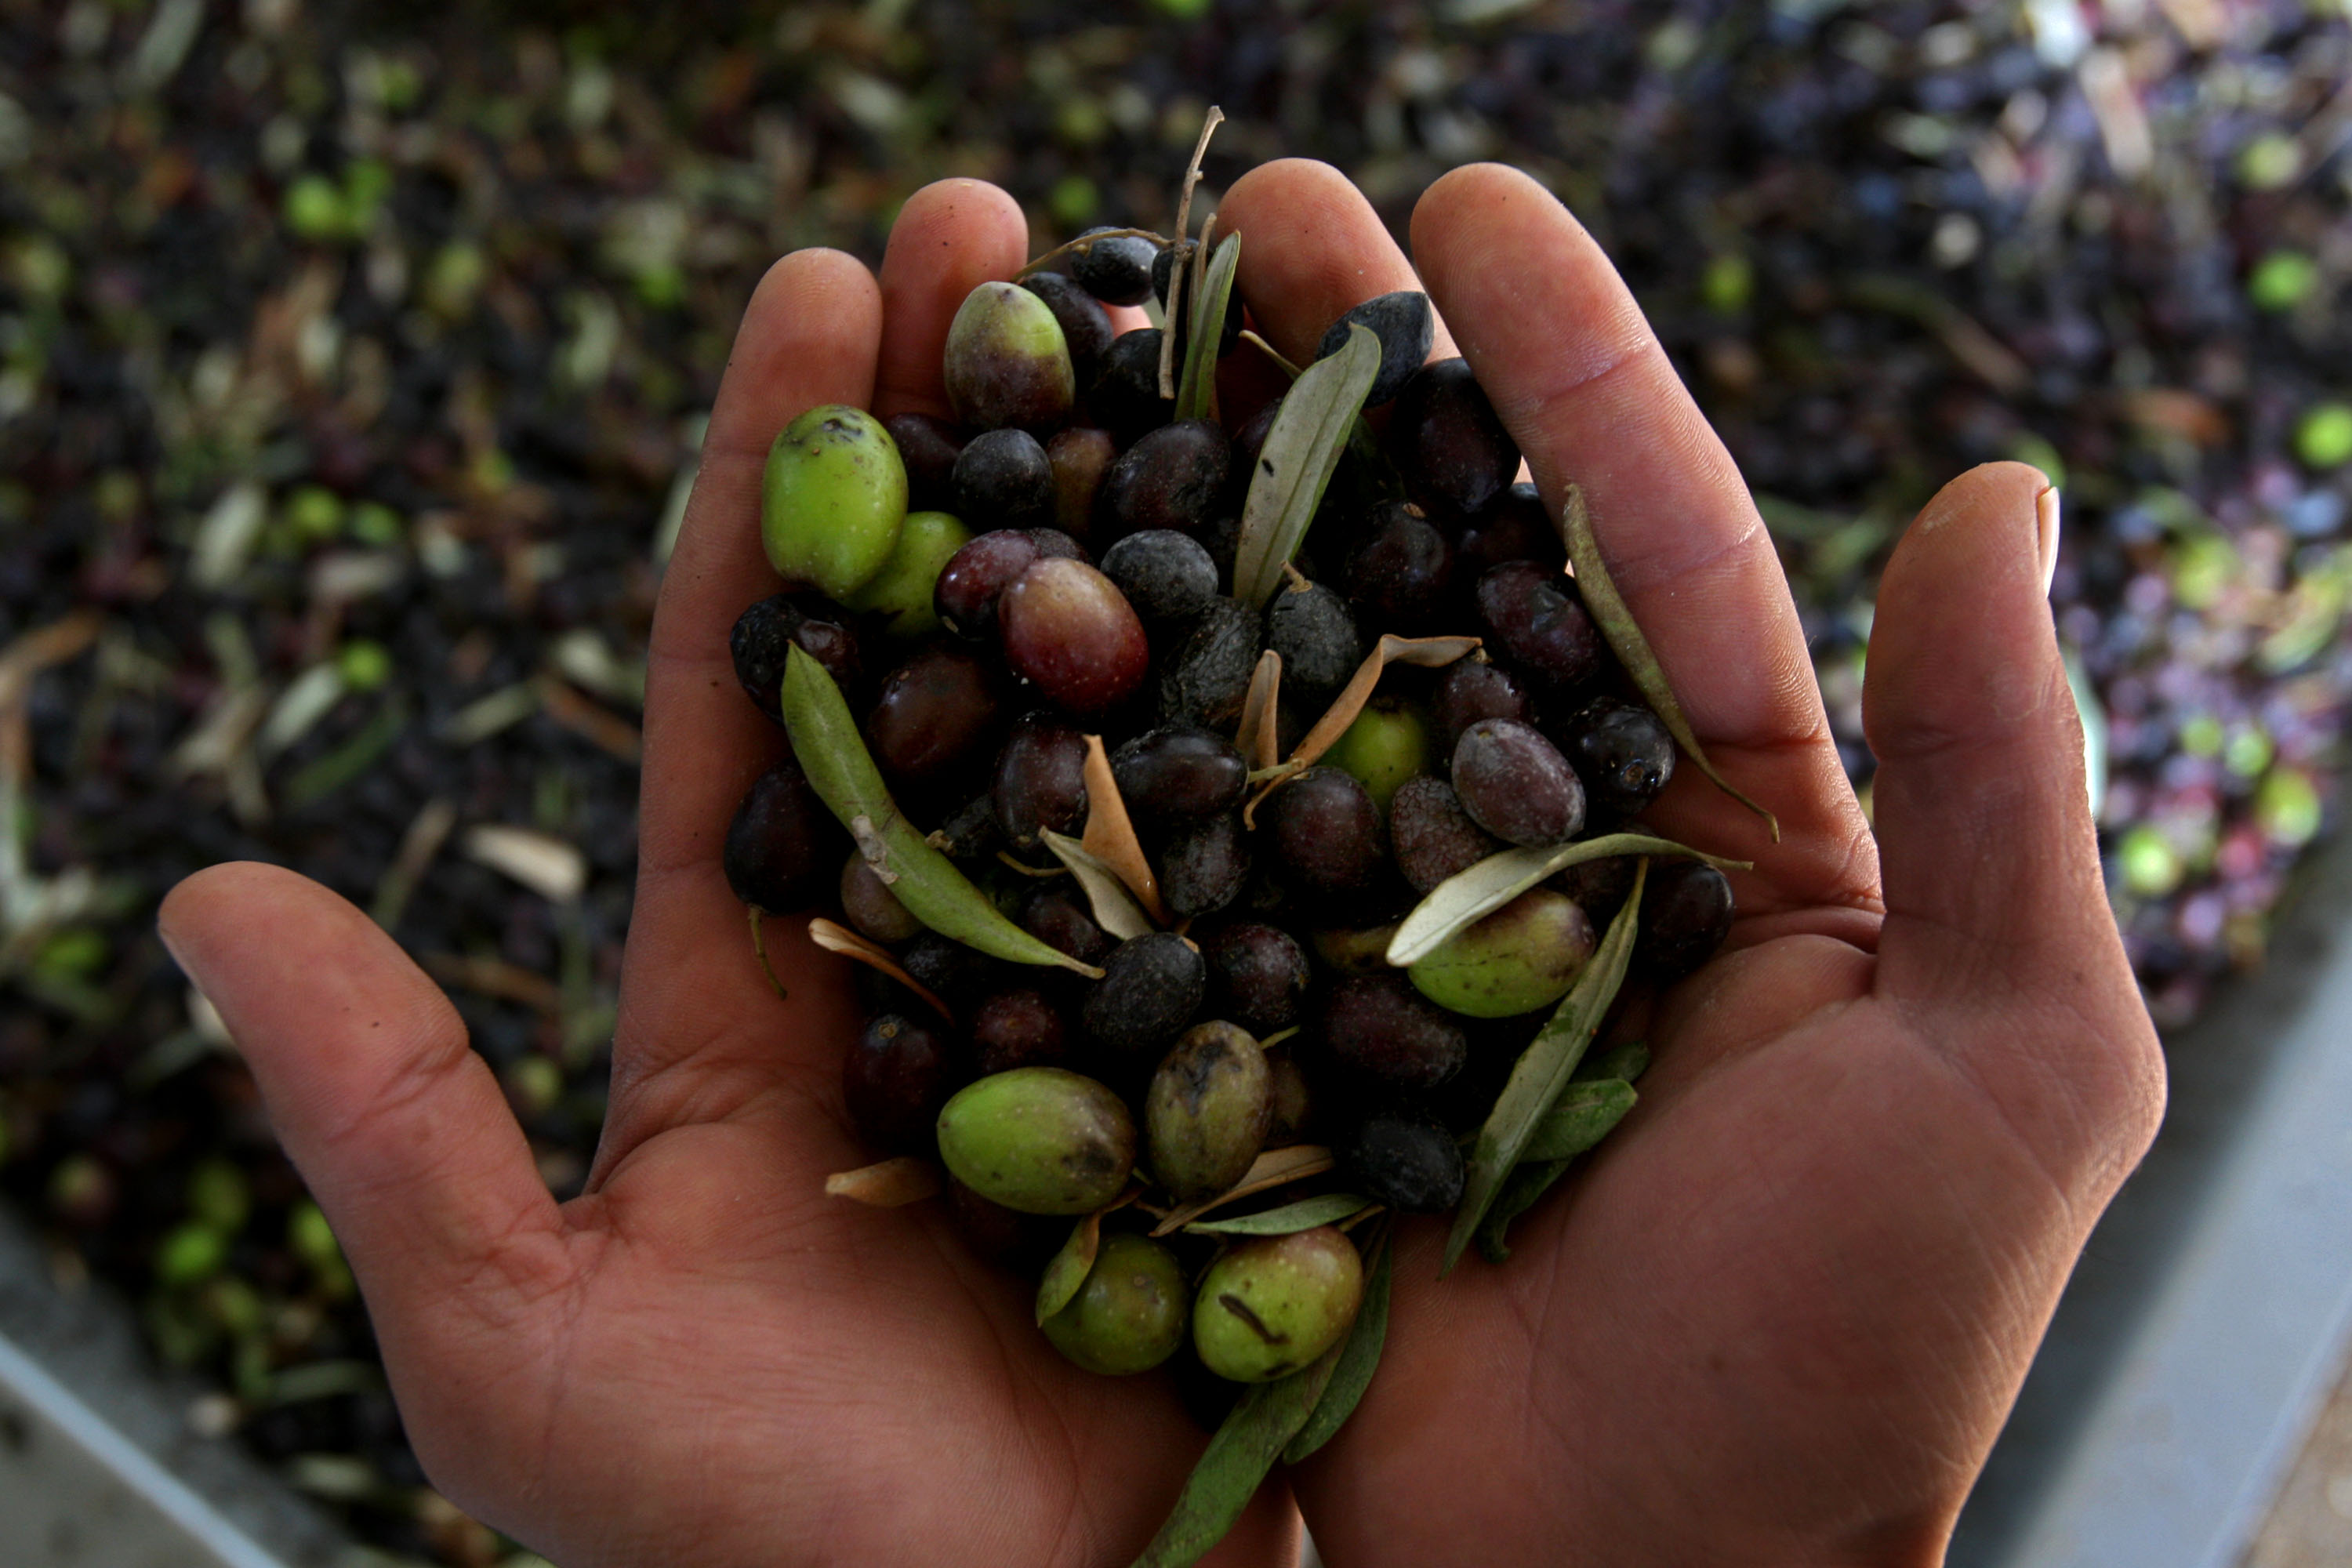 Olive Oil Fraud: What's Really in the Bottle in Your Kitchen?